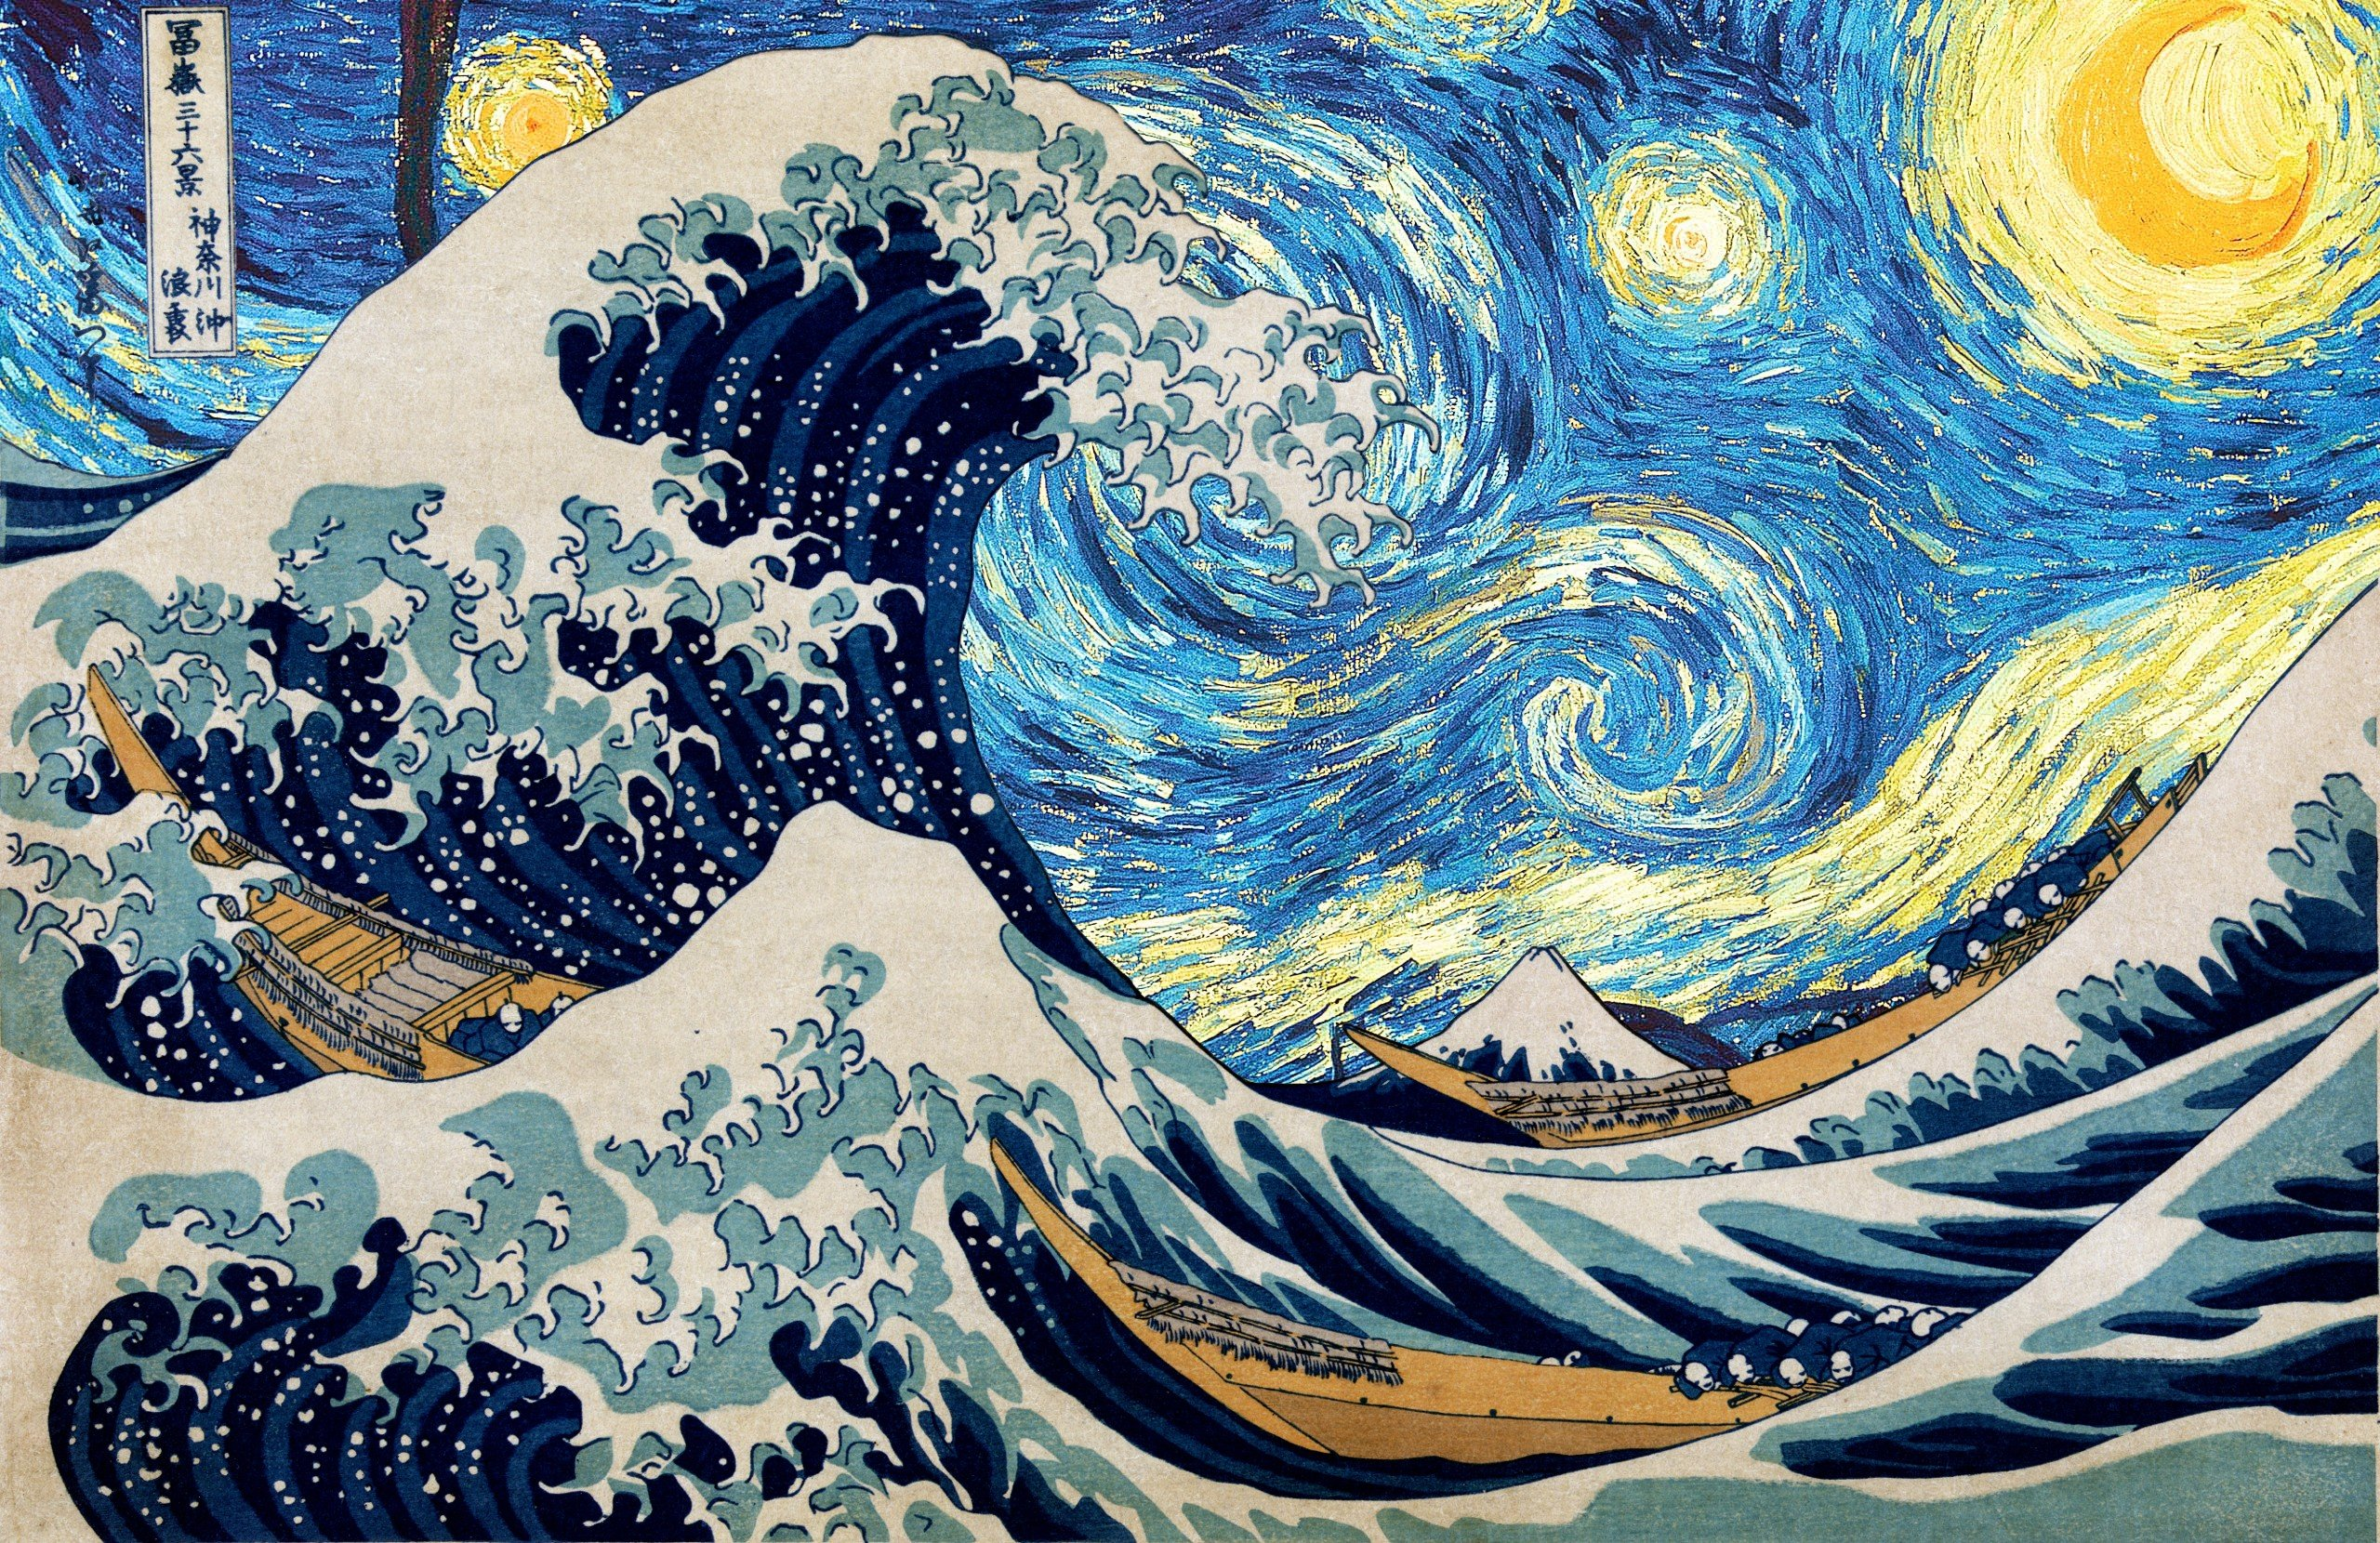 Van gogh wallpaper image by David Galloway on Ex Libris